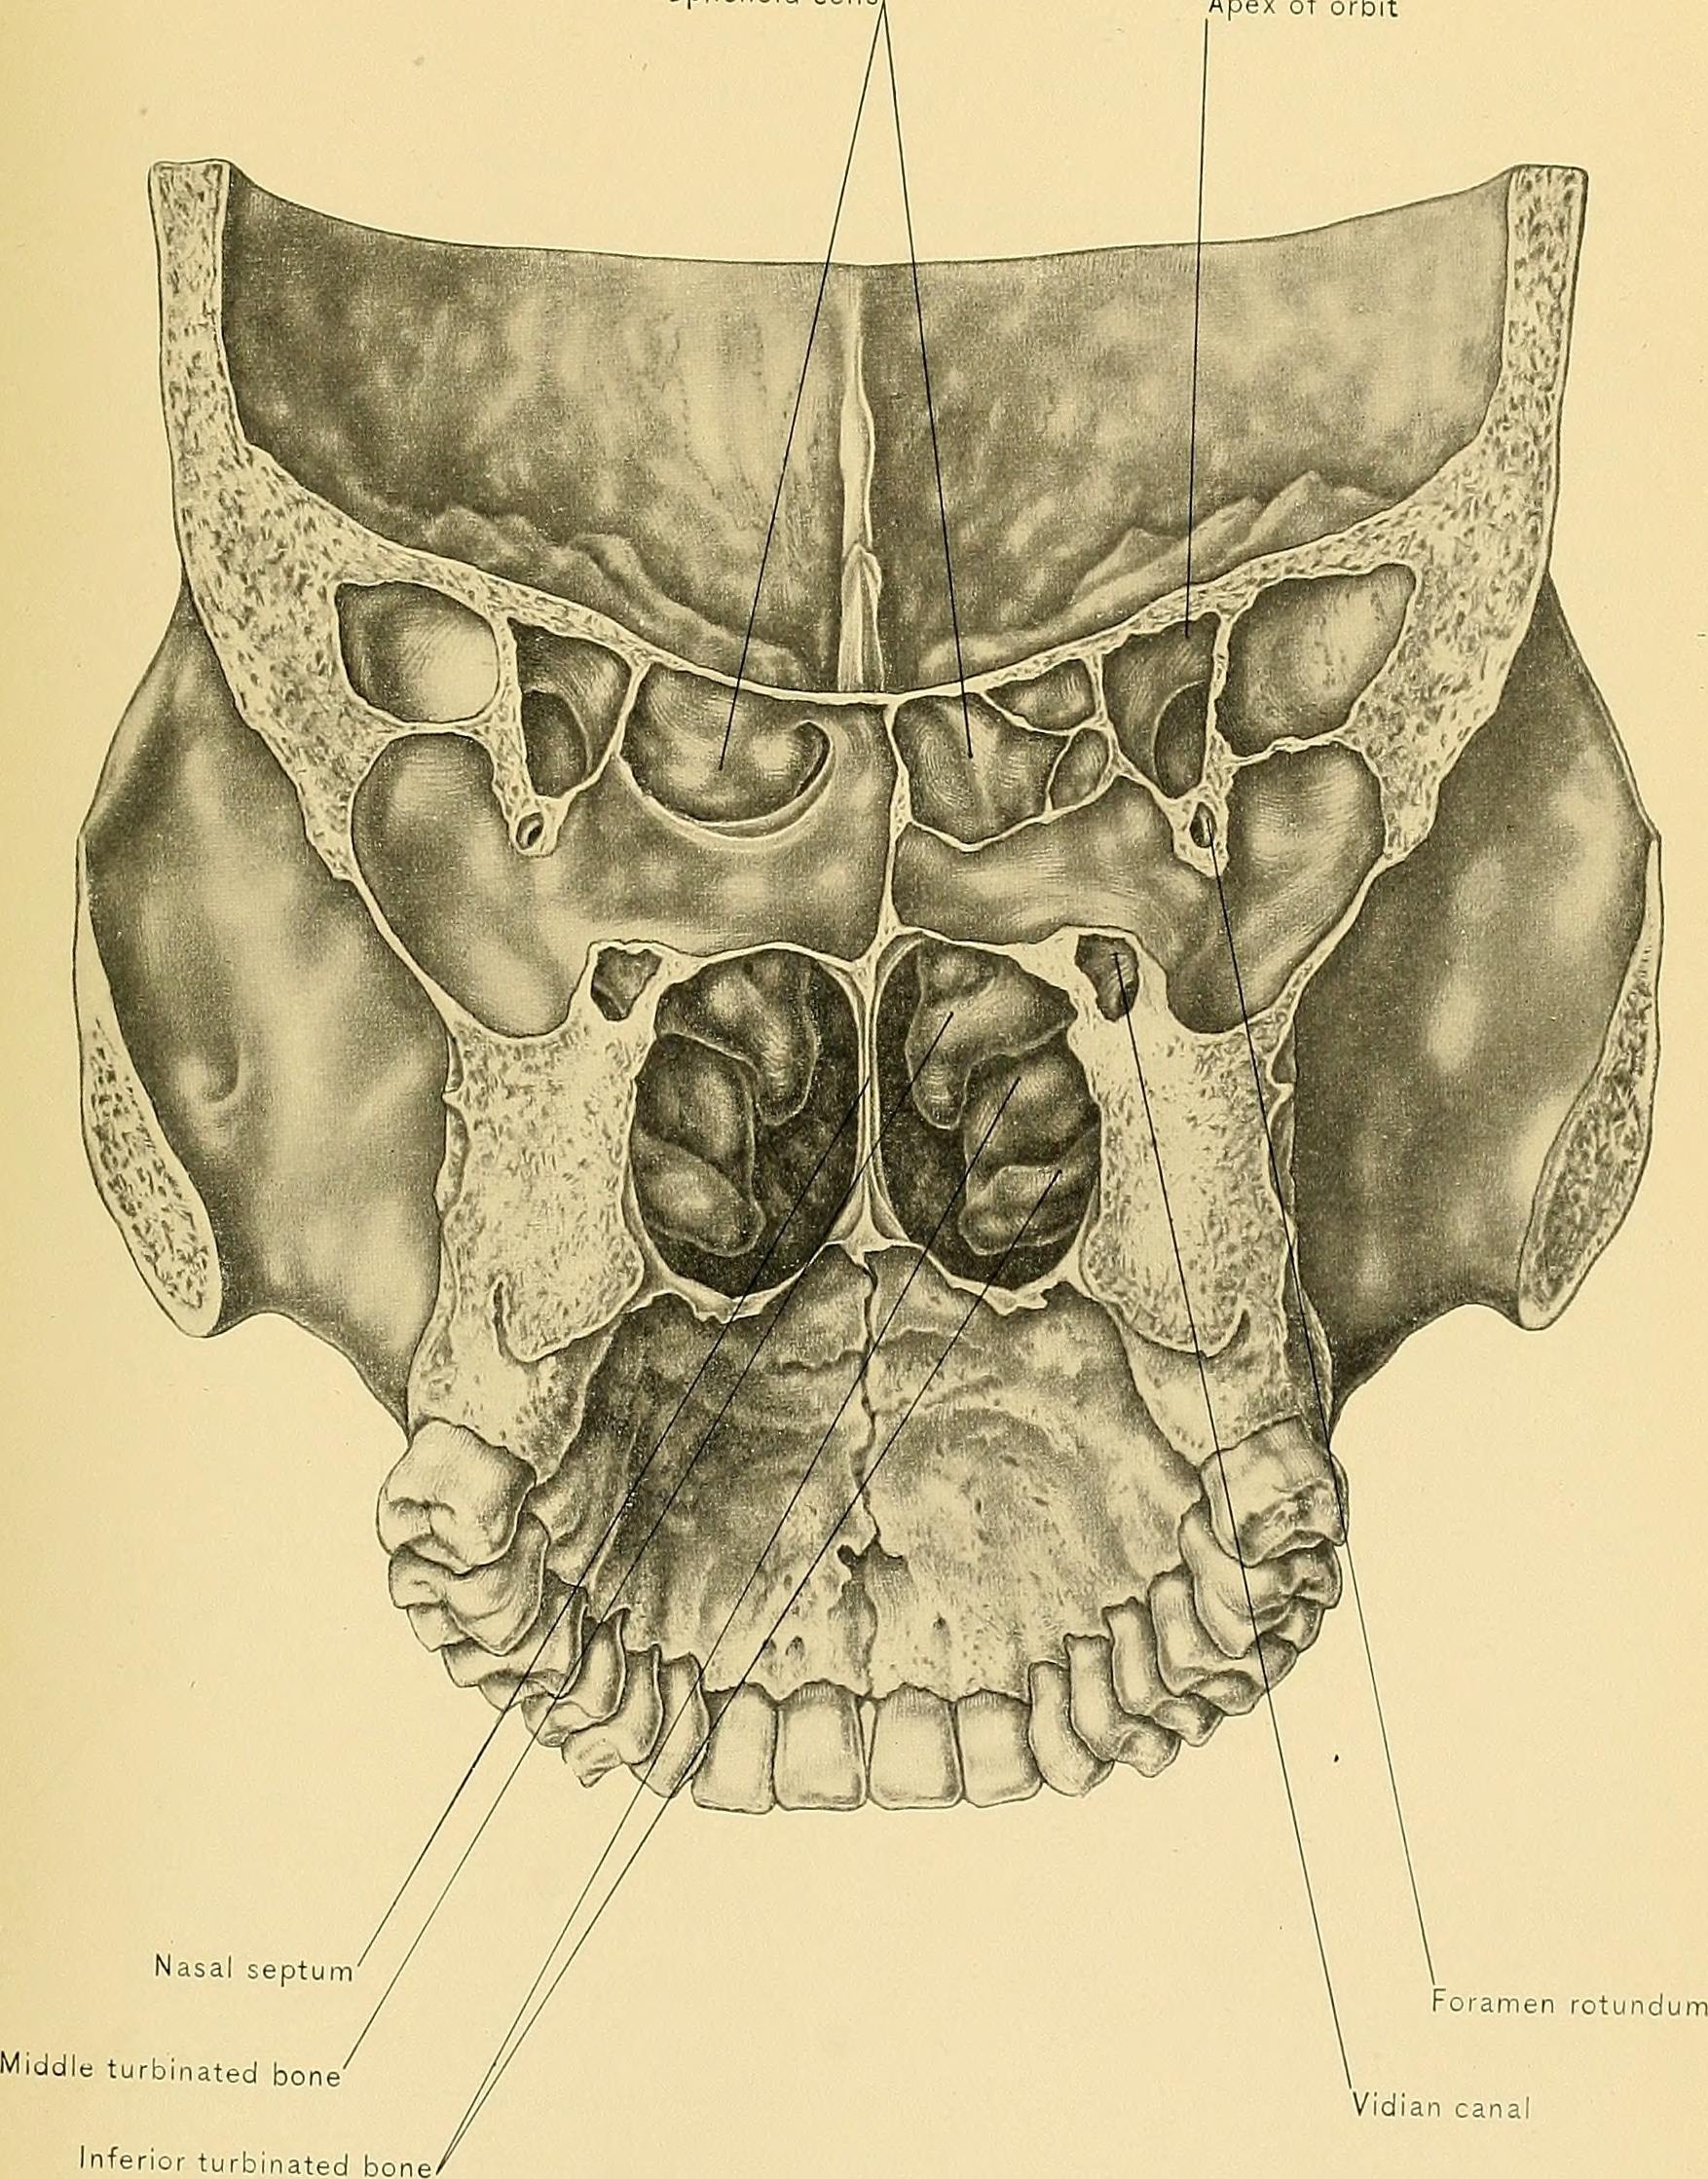 This diagram shows our nasal cavity and its bony flanges, the turbinates. These bony structures are covered in damp skin carrying scent-detecting (chemosensory) nerve endings